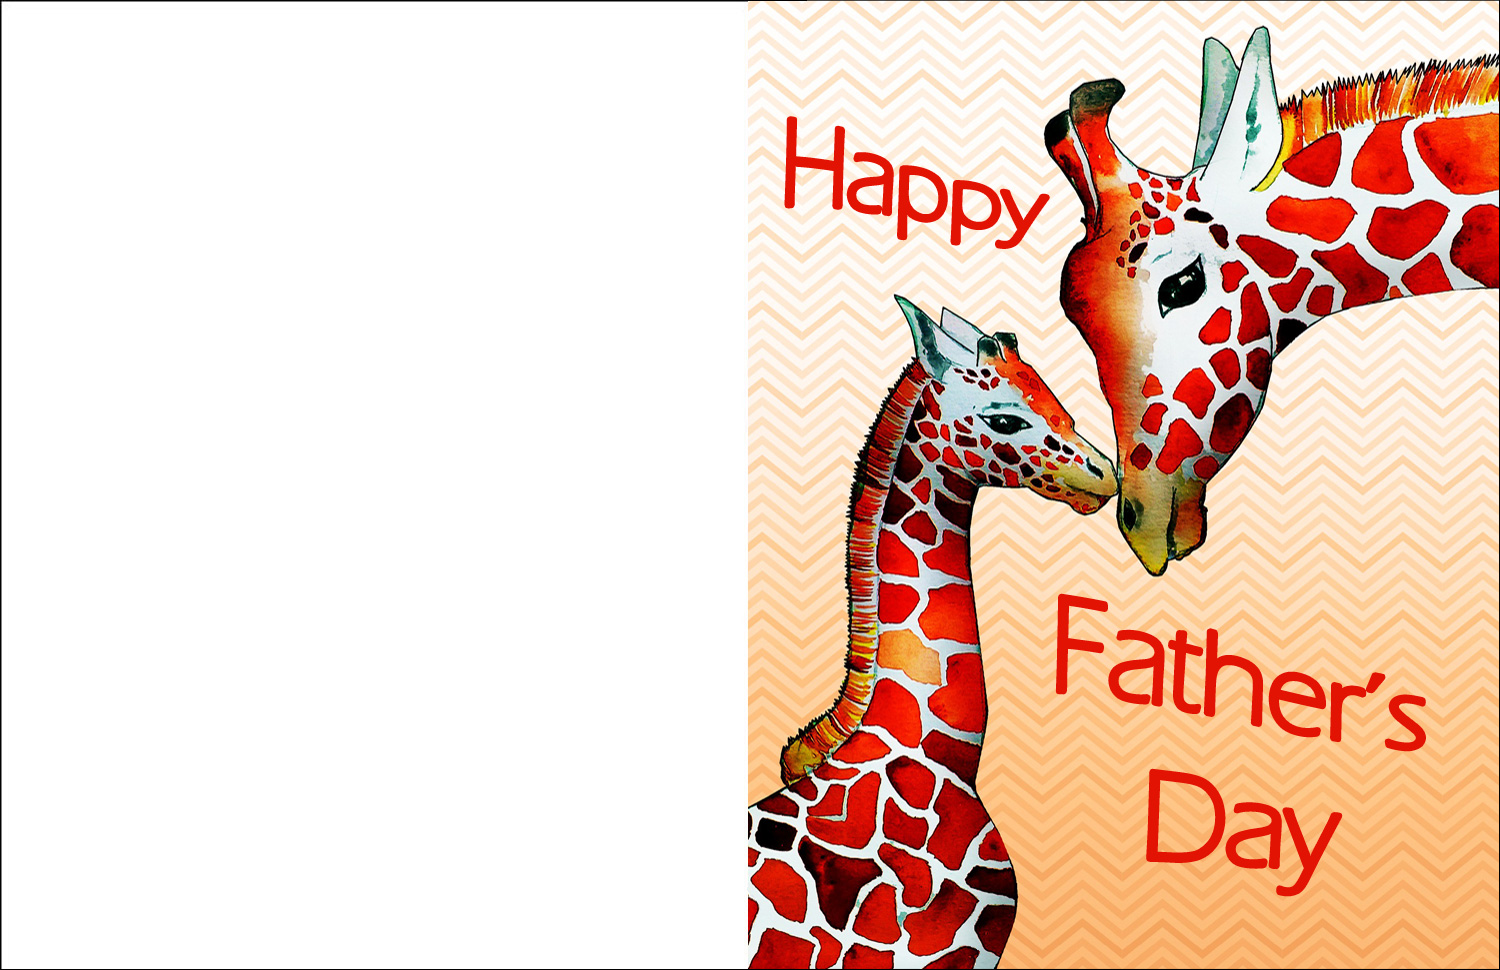 Free printable Father's Day card picturing a giraffe and his son.